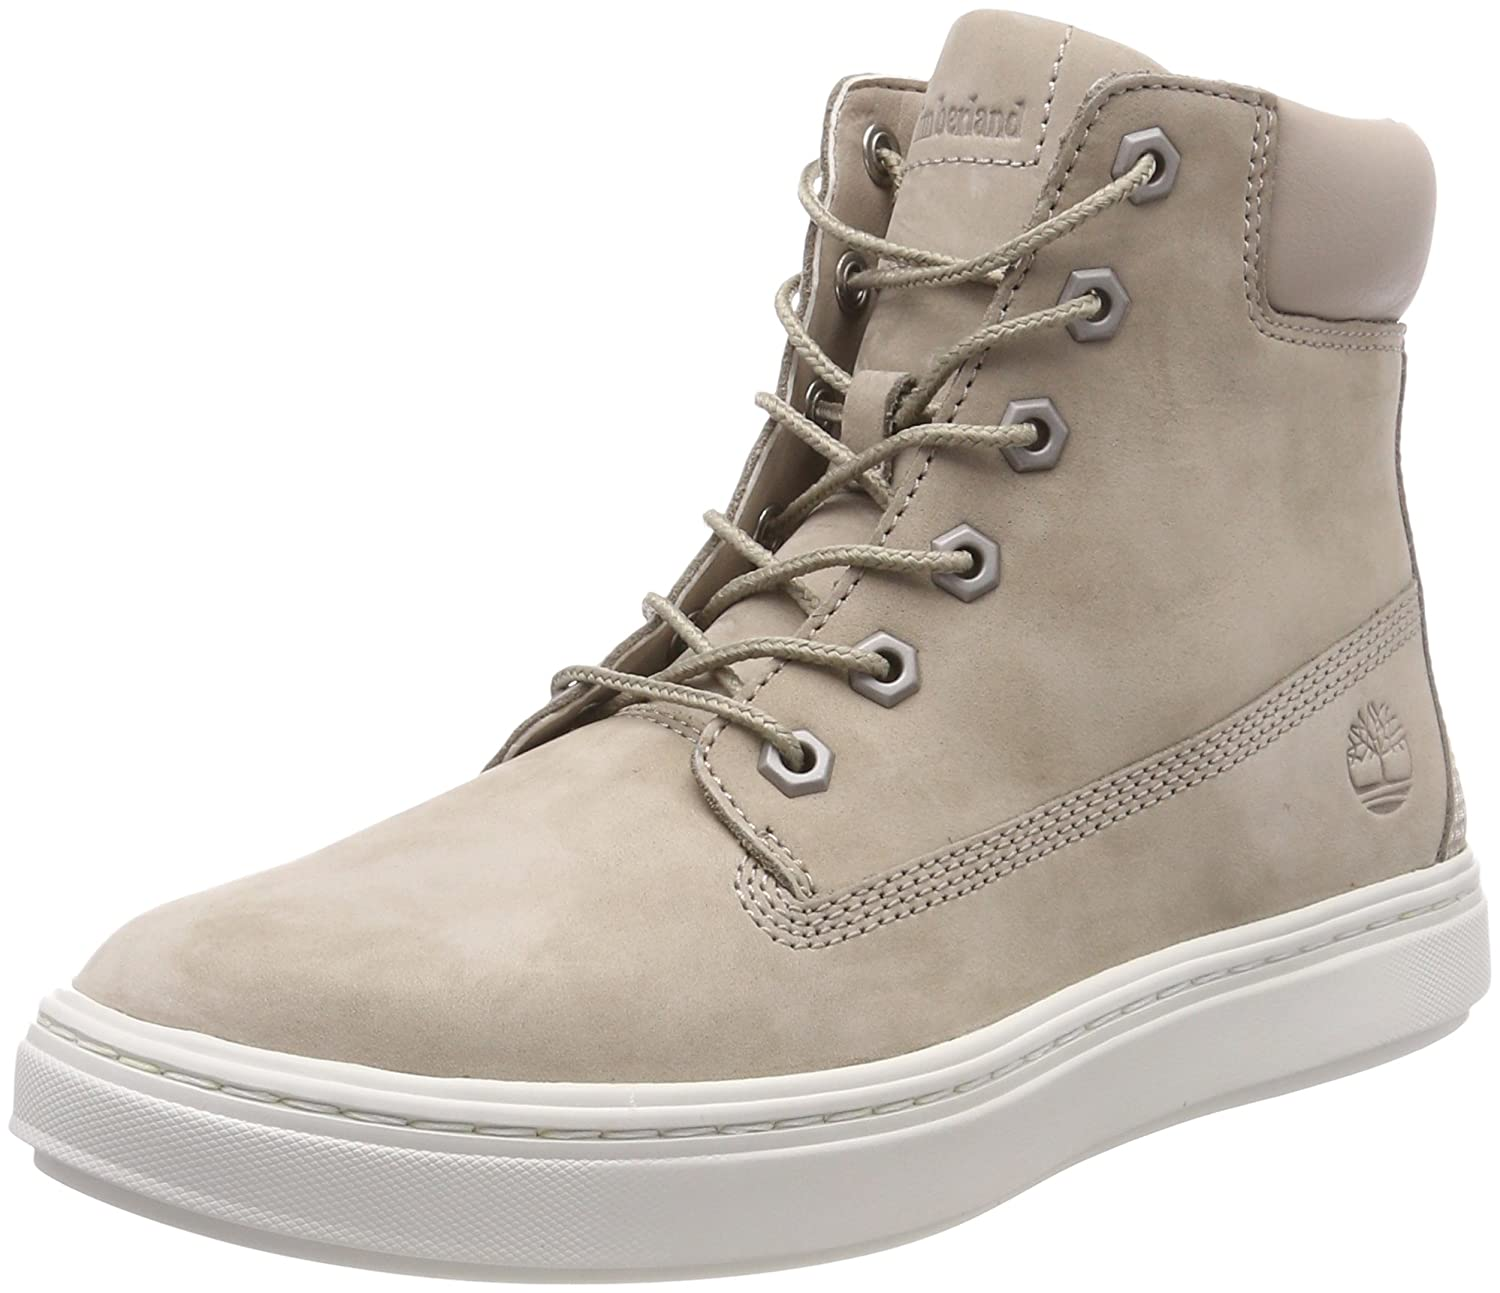 Timberland Londyn, Bottes Bottes Femme Marron (Simply Marron 734 Taupe Naturebuck L47) e906eec - digitalweb.space